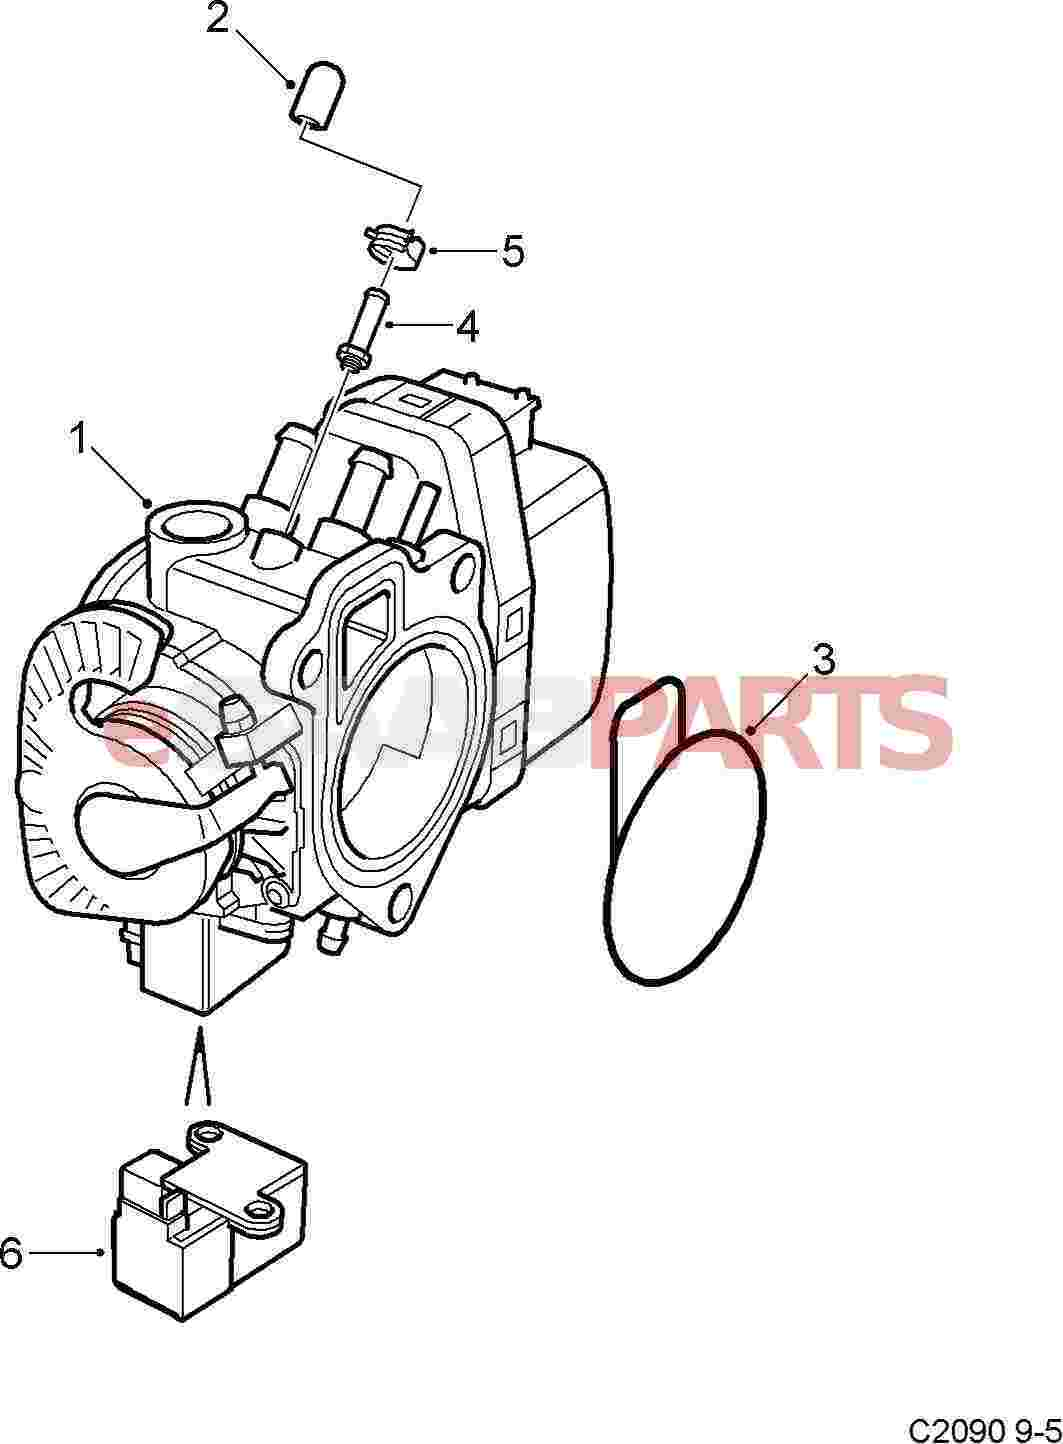 5337845     SAAB    Solenoid     Saab    Parts from eSaabParts